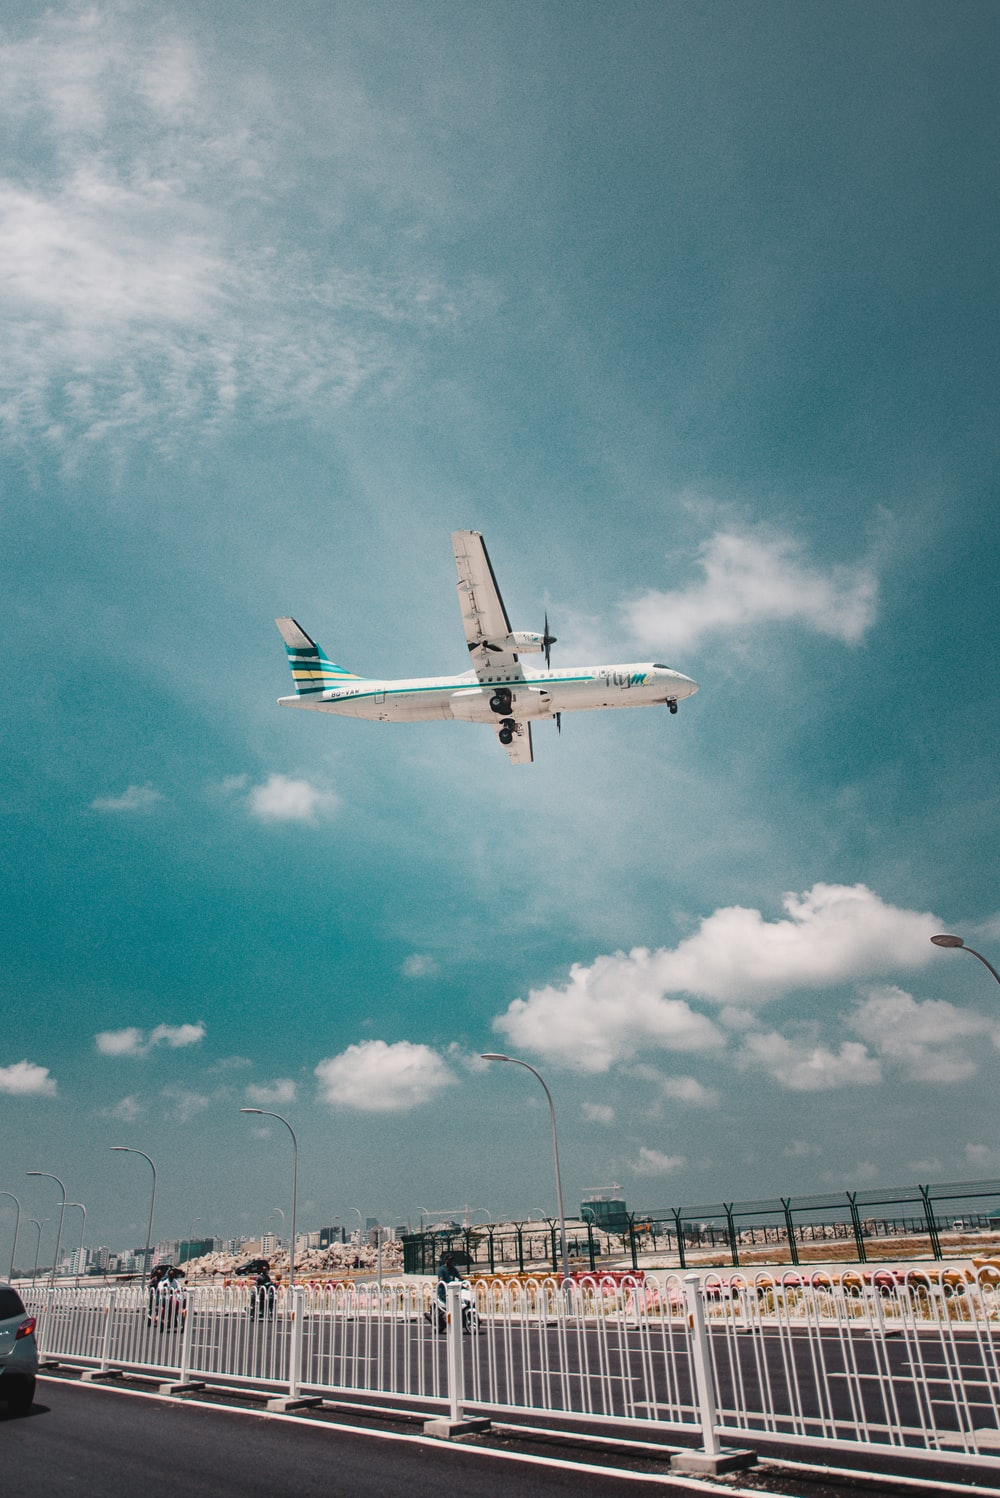 plane on air under blue sky at daytime